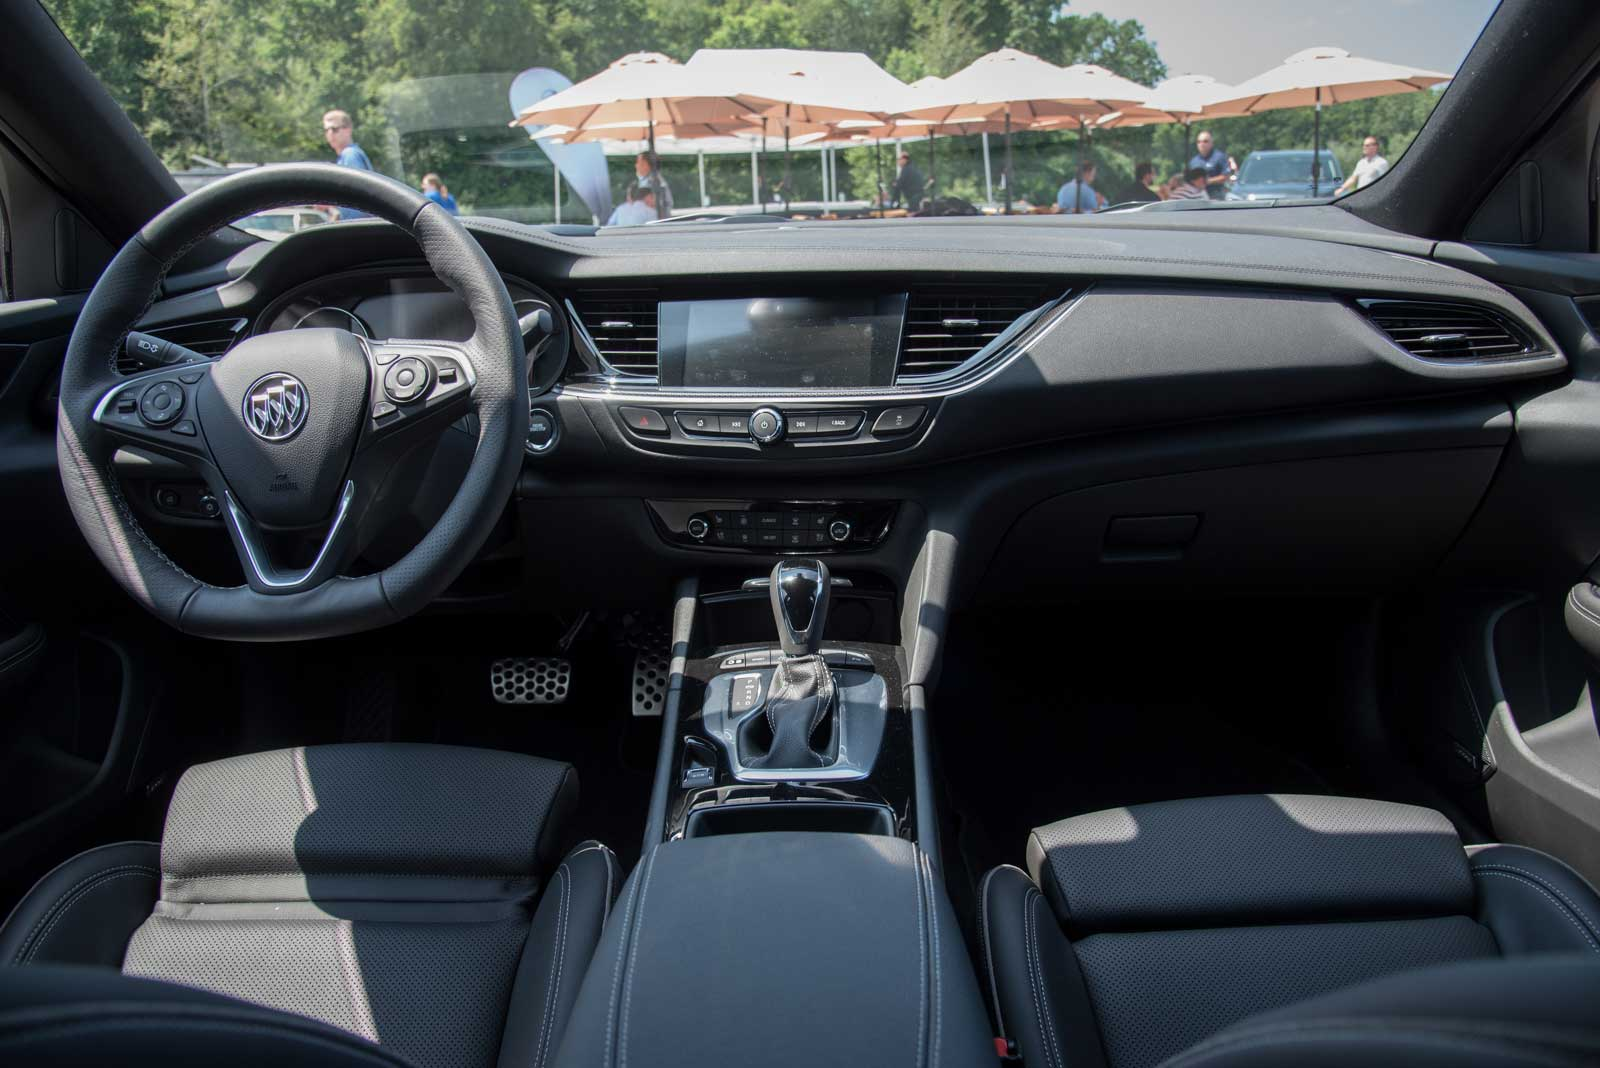 2018 Buick Regal Gs Interior 03